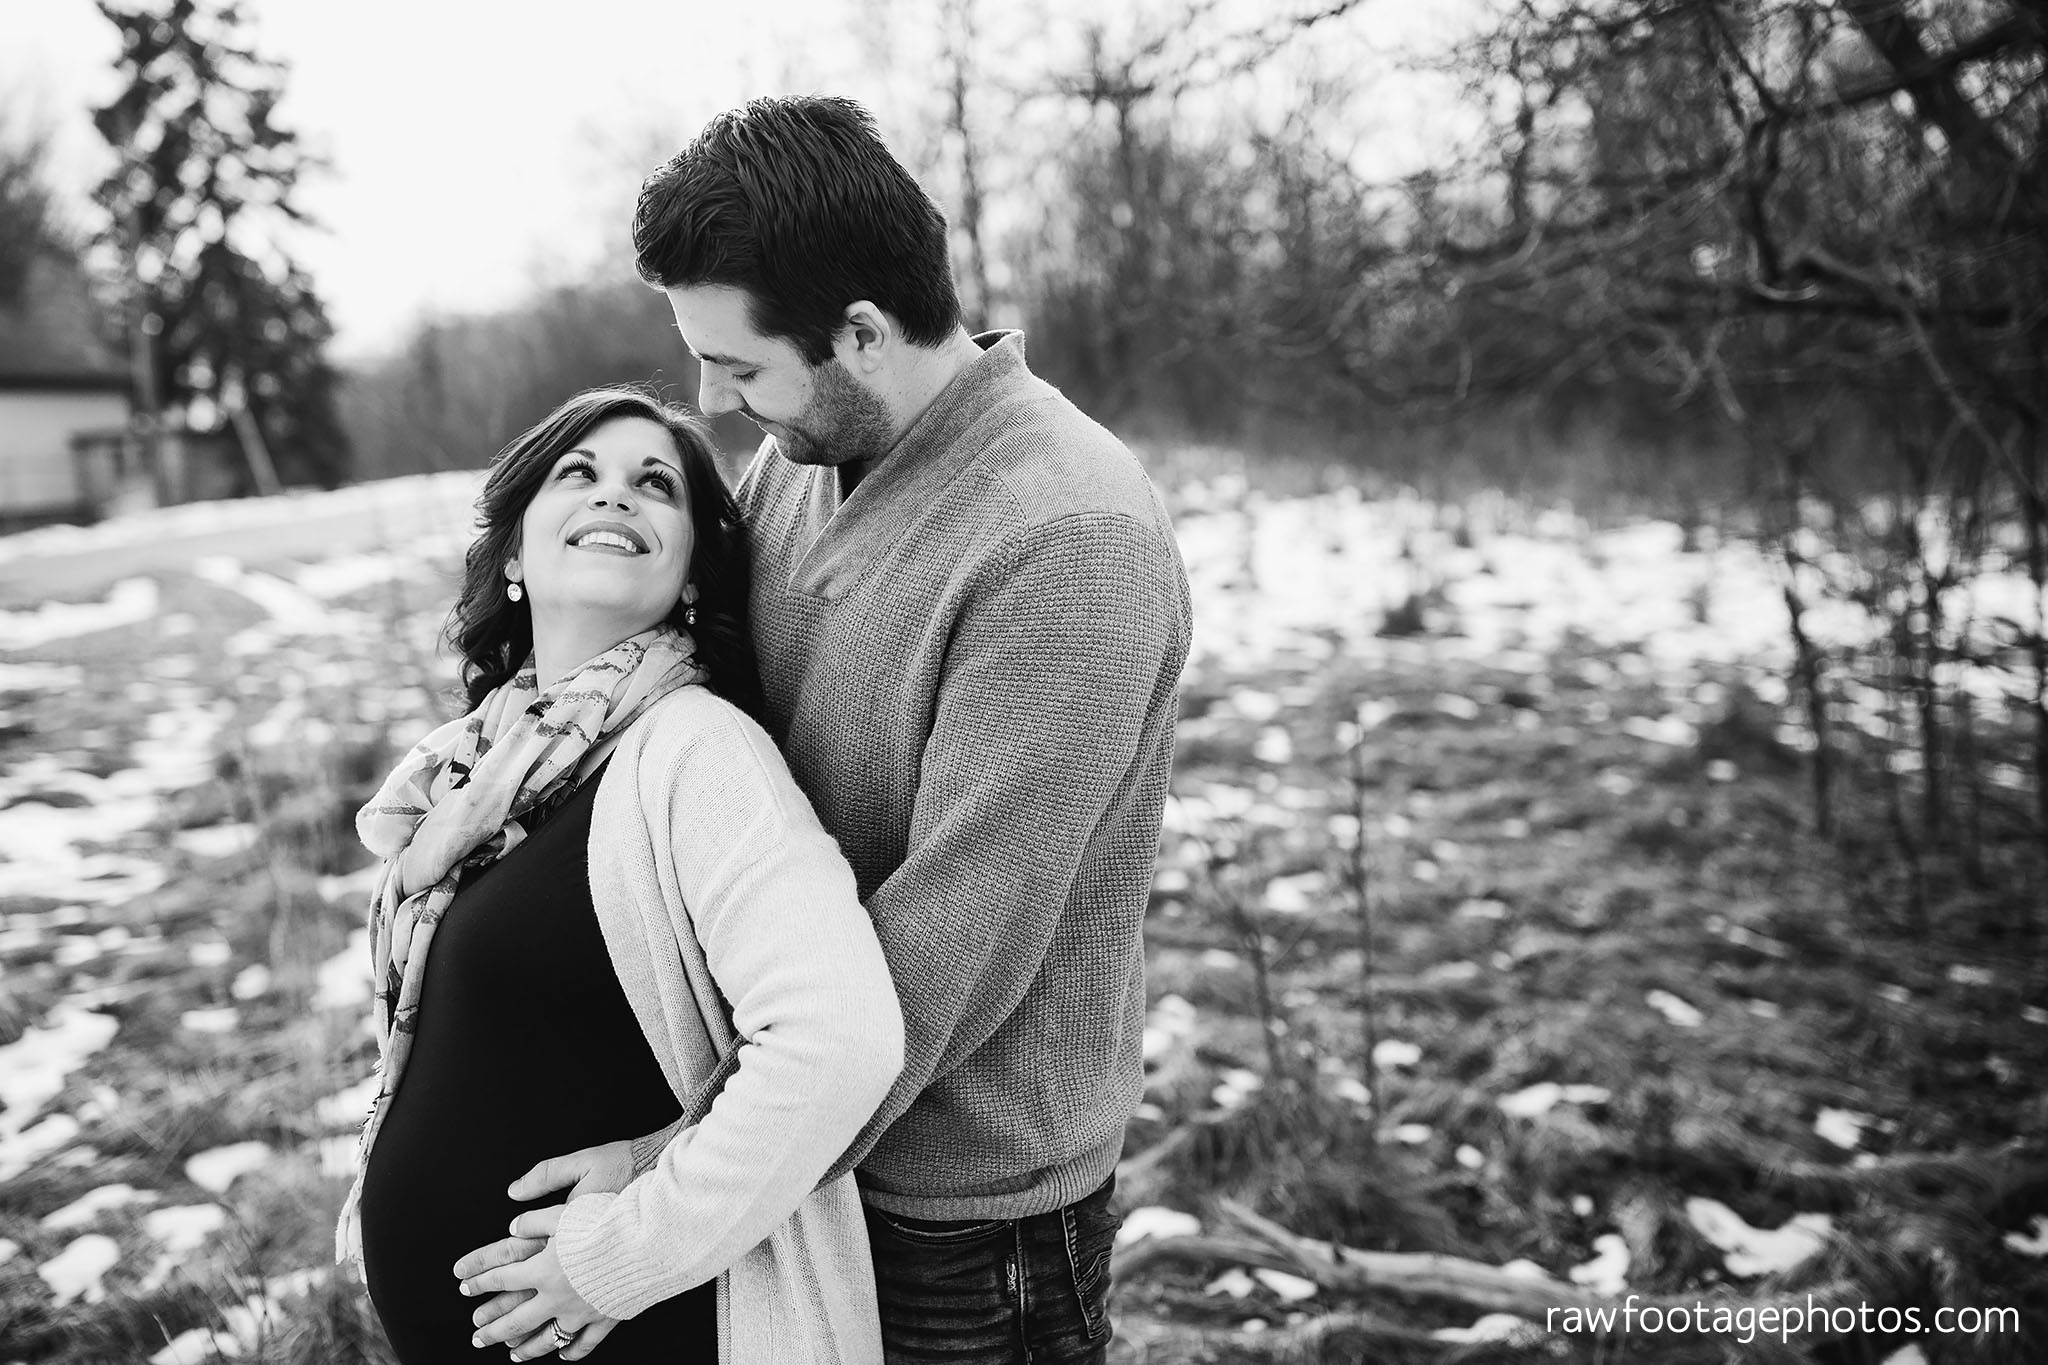 London_Ontario_Maternity_Photographer-Maternity_Session-Family_Photography-Winter_Photos-Raw_Footage_Photography025.jpg